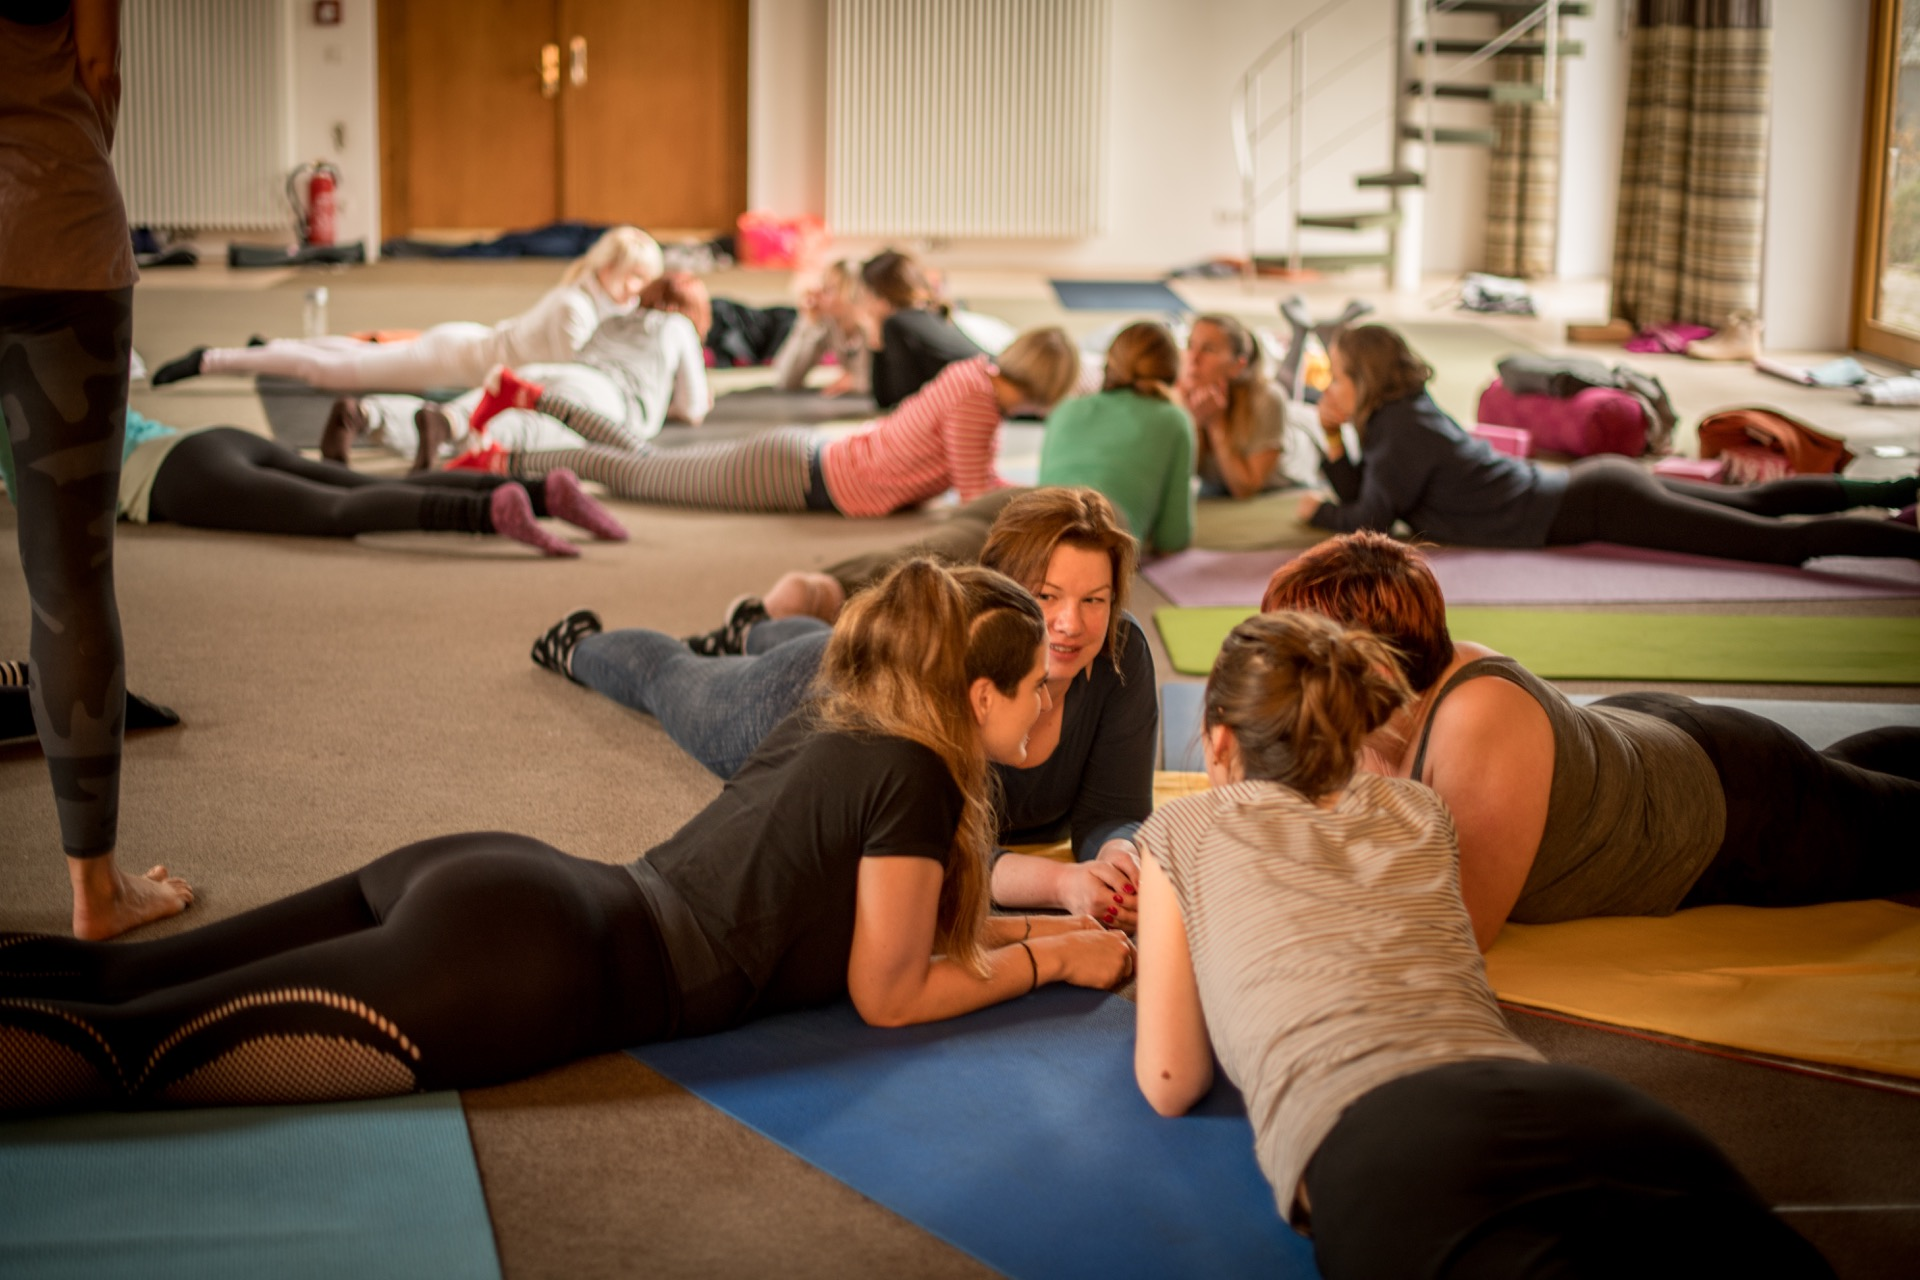 A-New-Beginning-Hie-Kim-Yoga-Retreat-Alina-Matis-Photography-011 - Hie Kim Yoga - Yoga Retreat - Yoga Workshops und Reisen